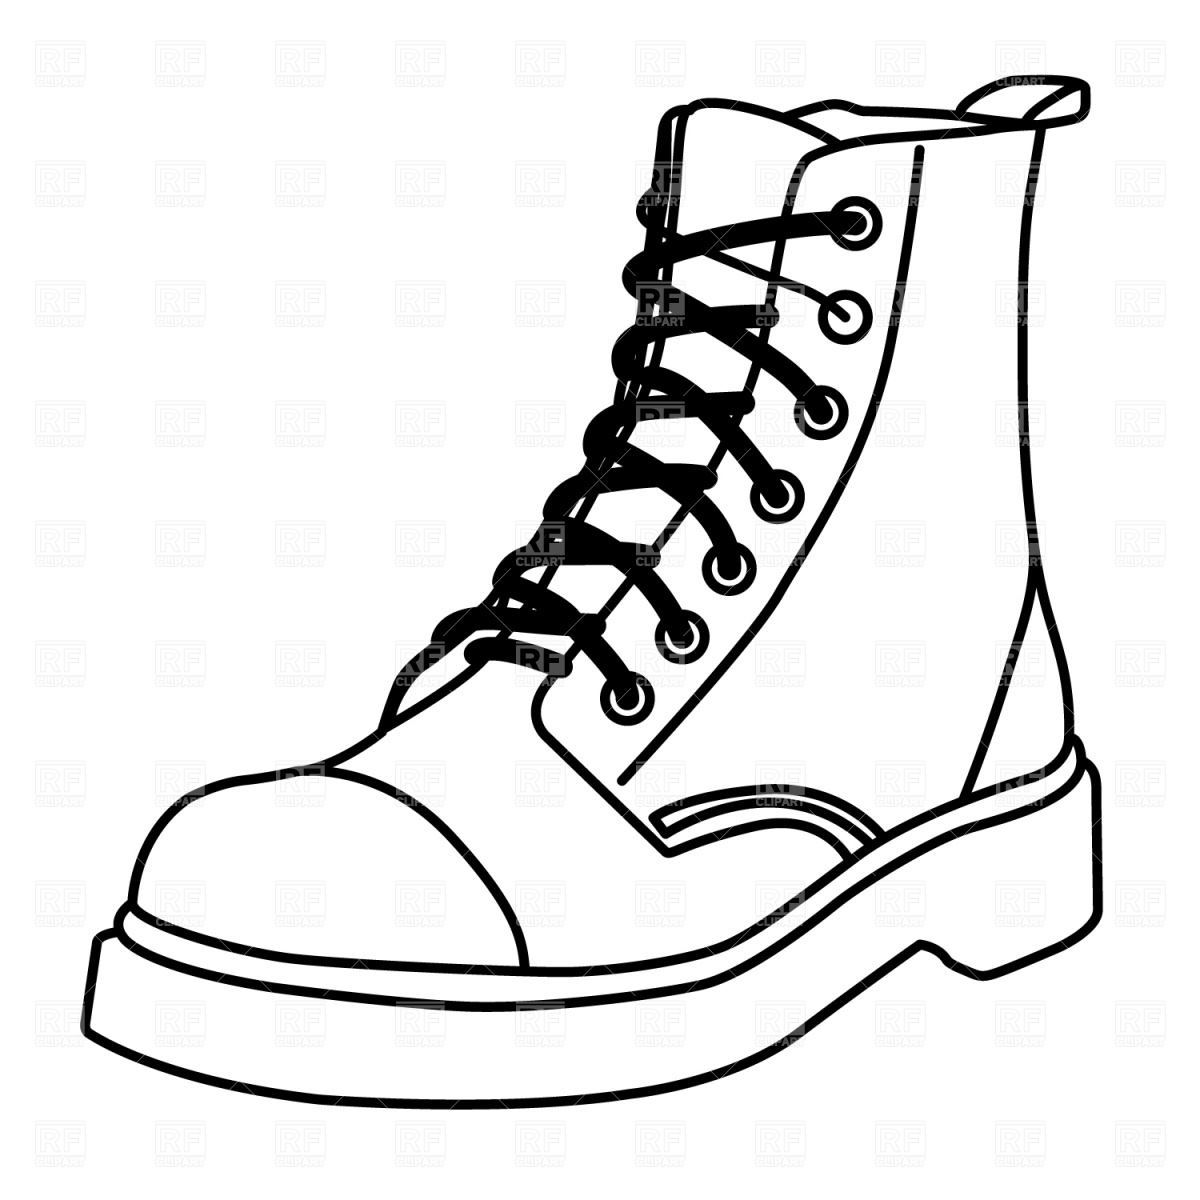 Drawn boots army Vector illustration Army Clipart Combat+boots+clipart